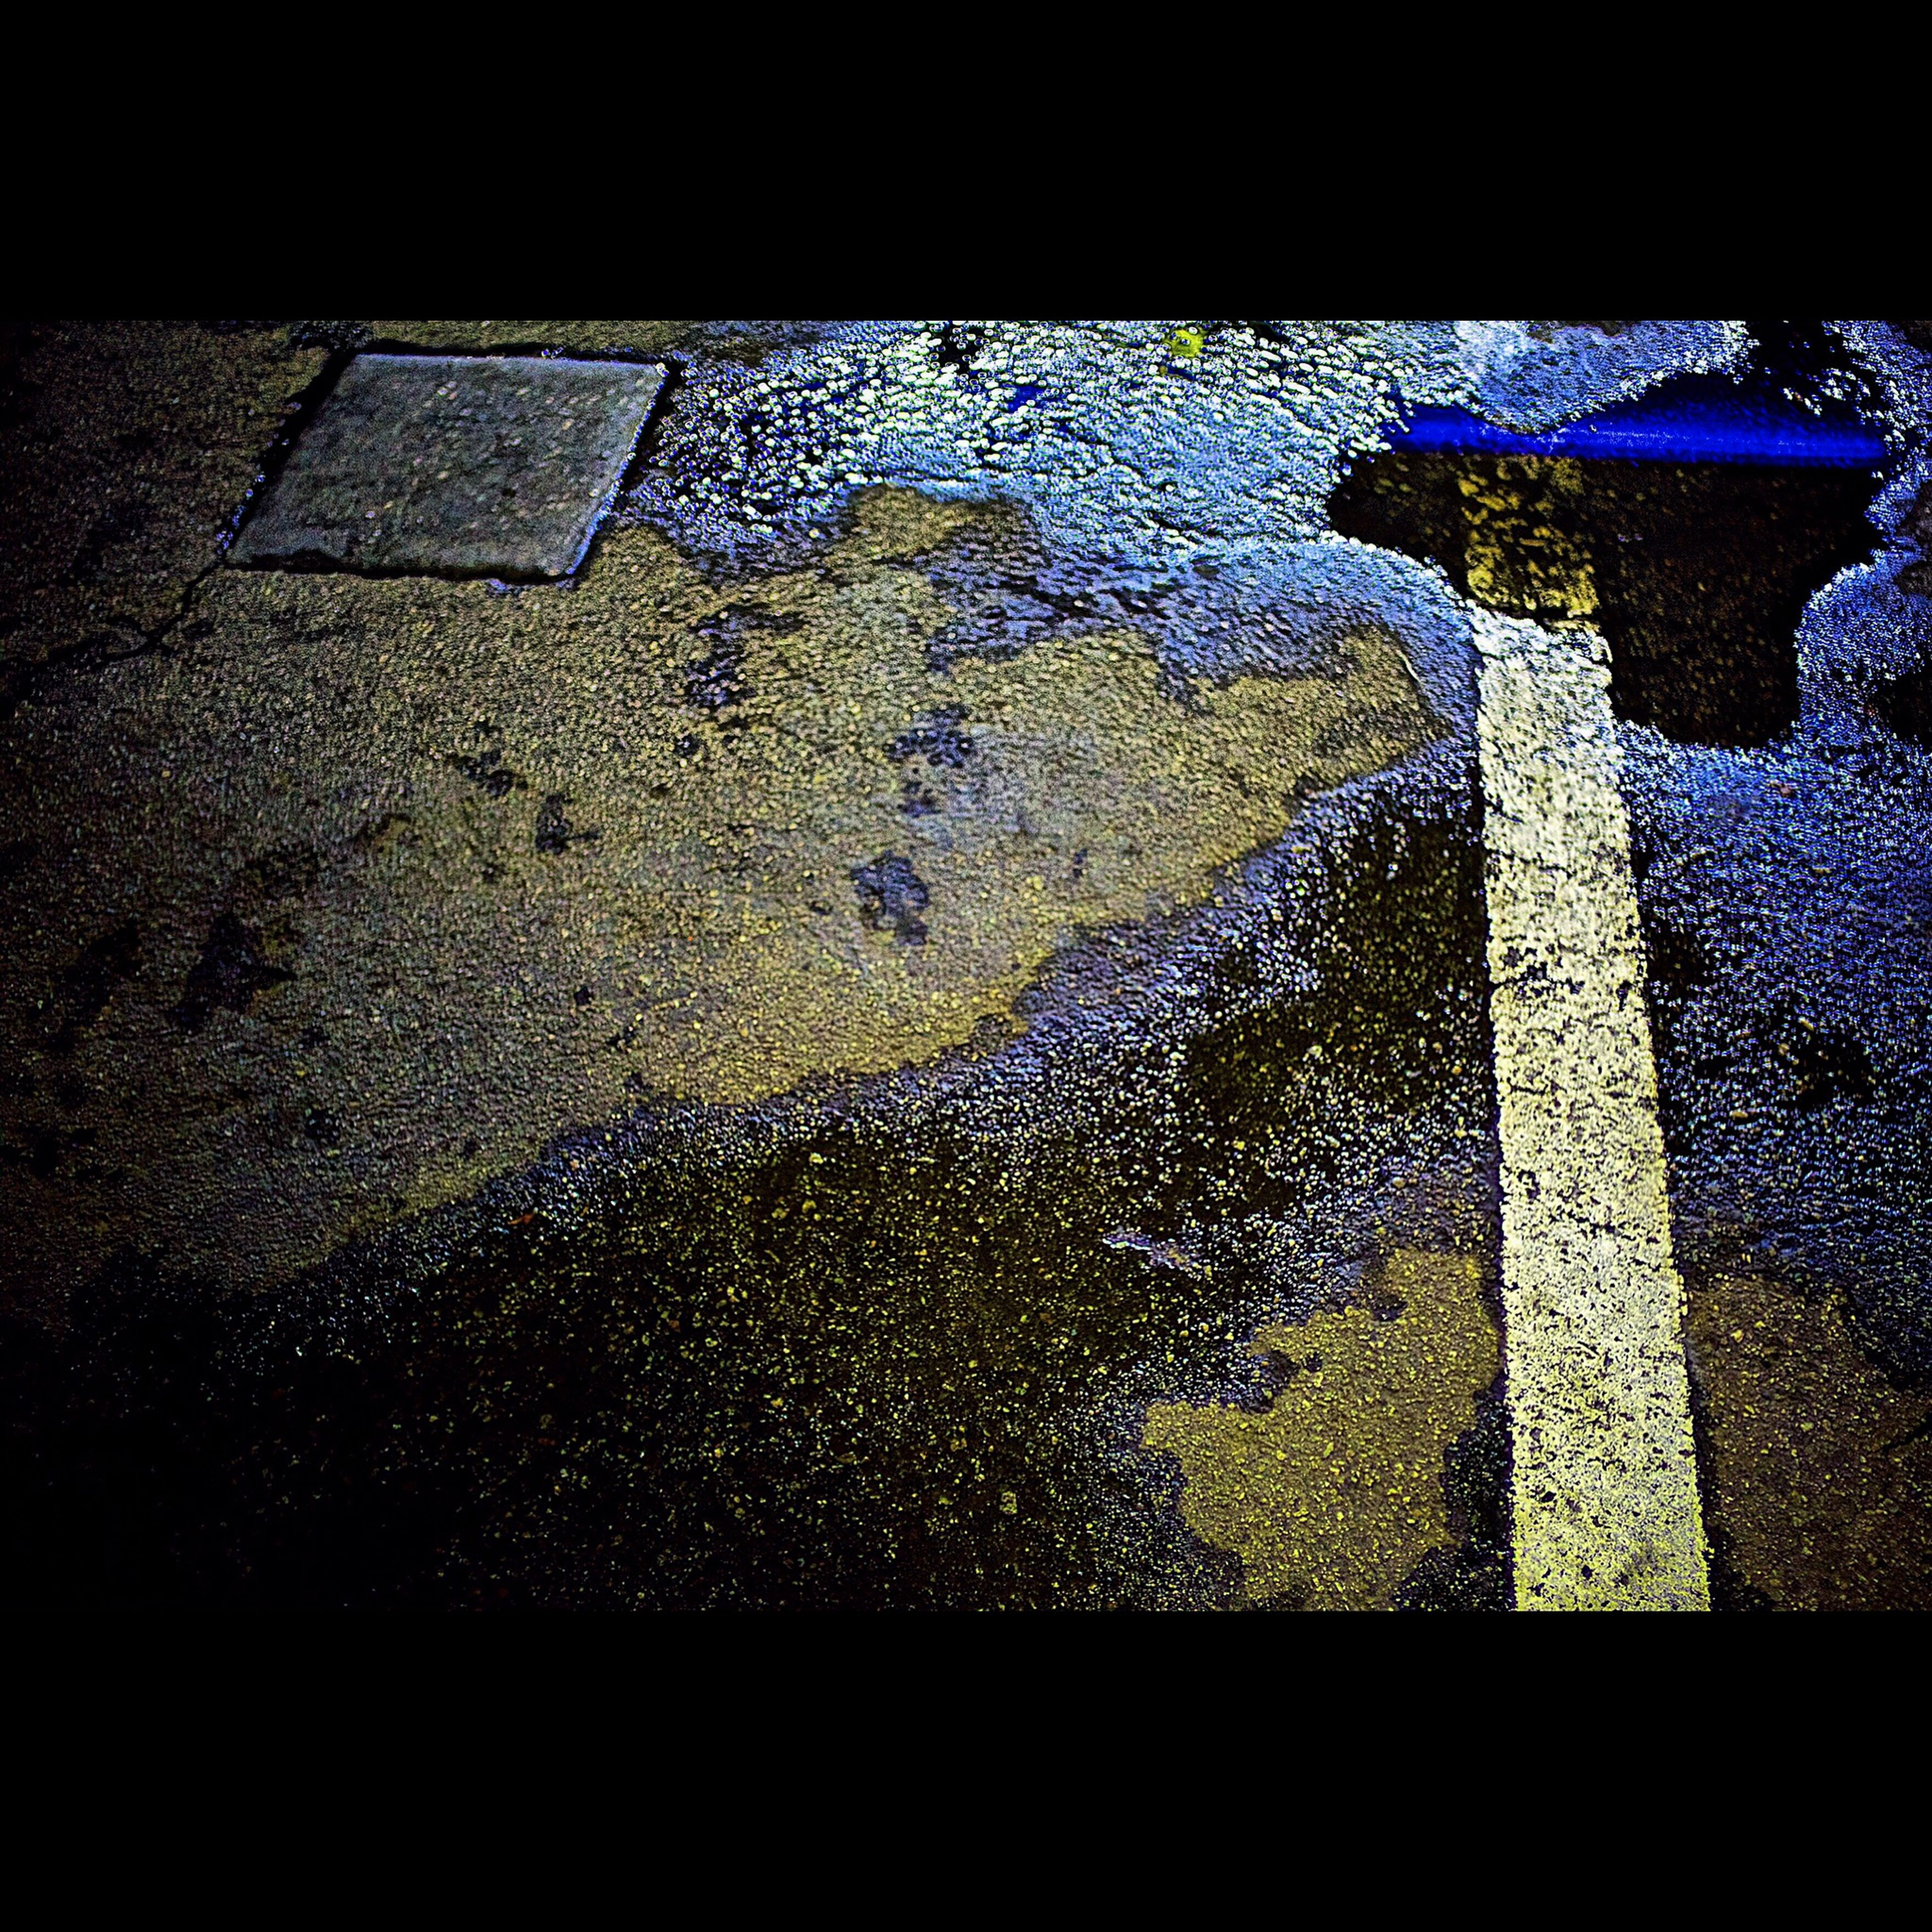 high angle view, street, shadow, close-up, water, built structure, day, wet, no people, outdoors, auto post production filter, blue, sunlight, architecture, textured, transportation, pattern, road, window